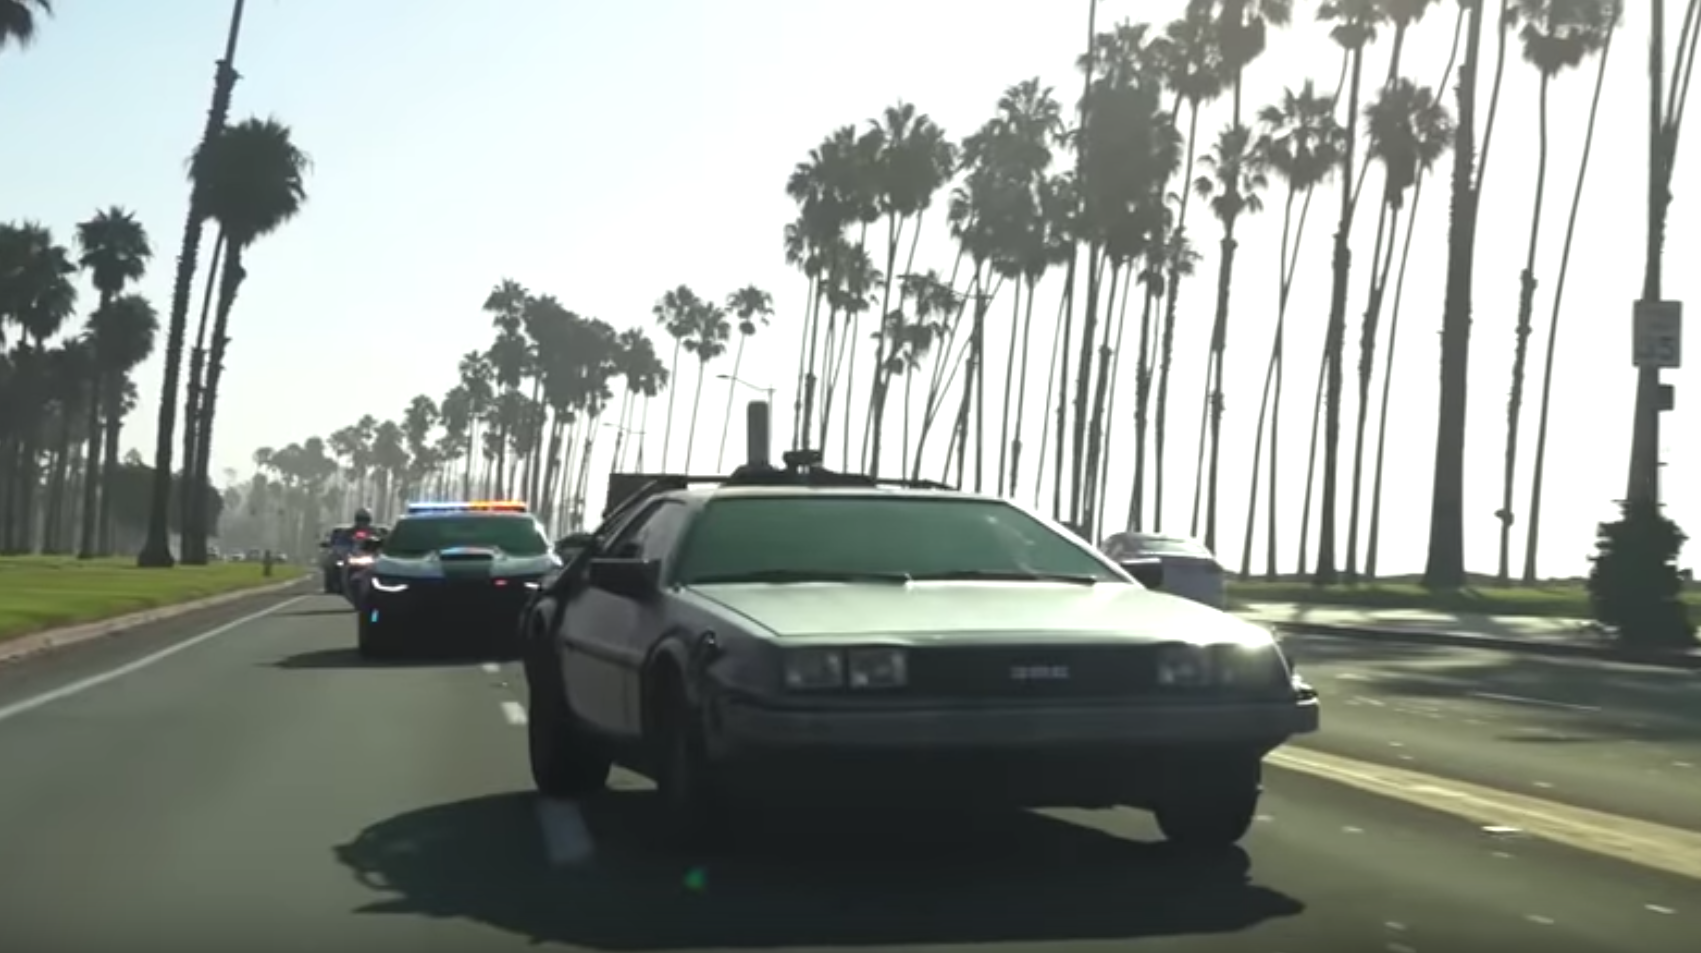 A scene from the Santa Barbara Police Department's Lip Sync Challenge video that they released in part because the Oxnard Police Department challenged them.